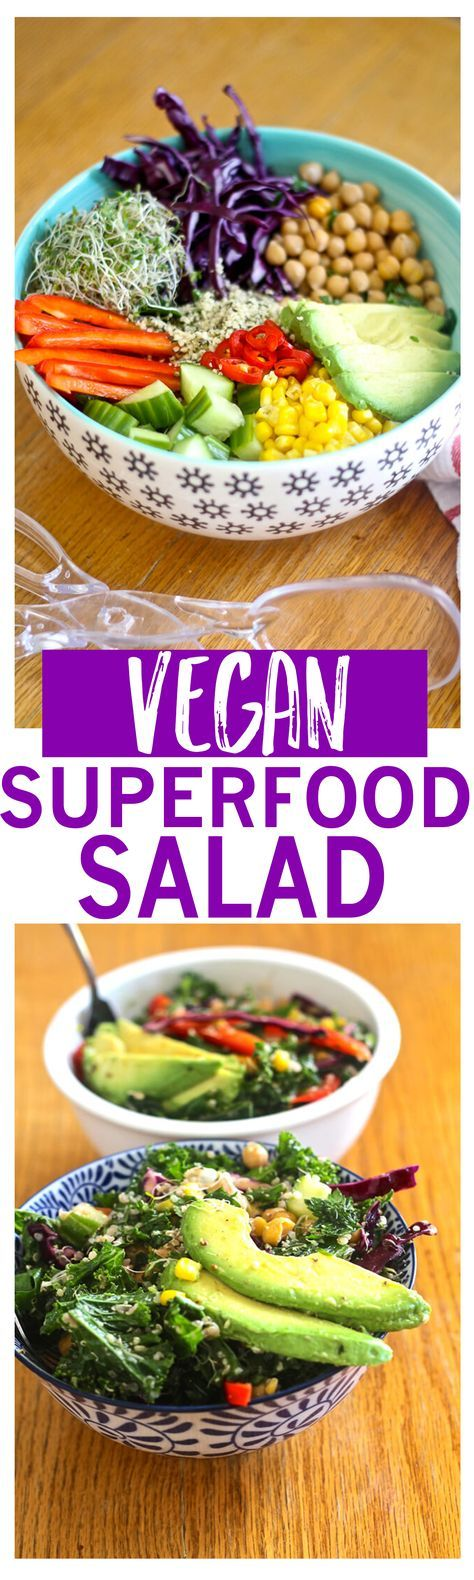 Superfood Salad is deliciously vegan with kale, chickpeas, avocado and more!